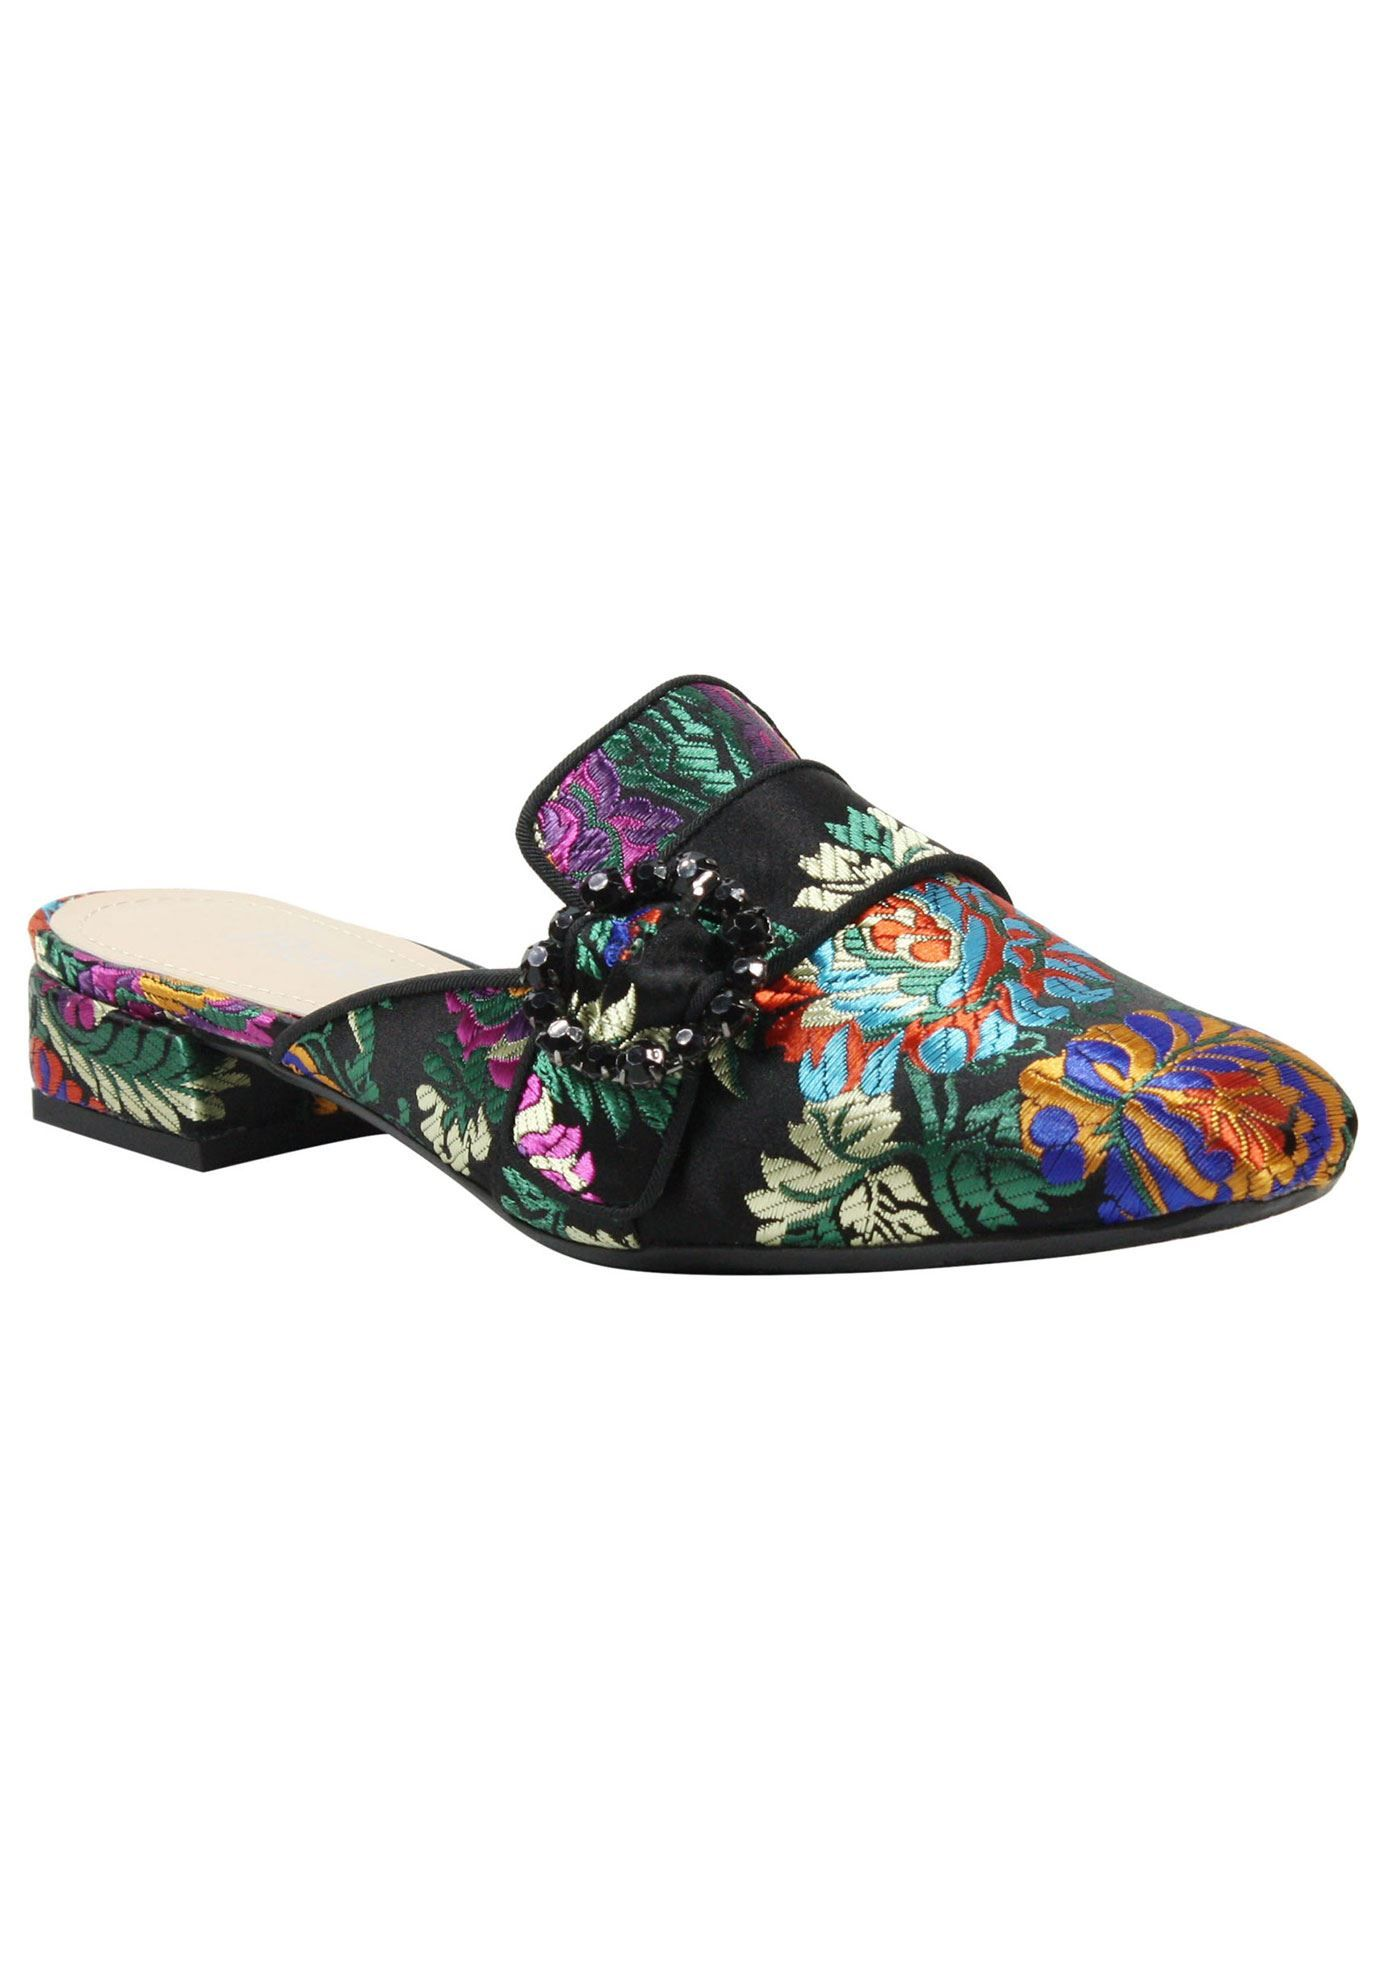 744b024d6f2 Senoches Slides by J.Renee - Women's Plus Size Clothing | Products ...